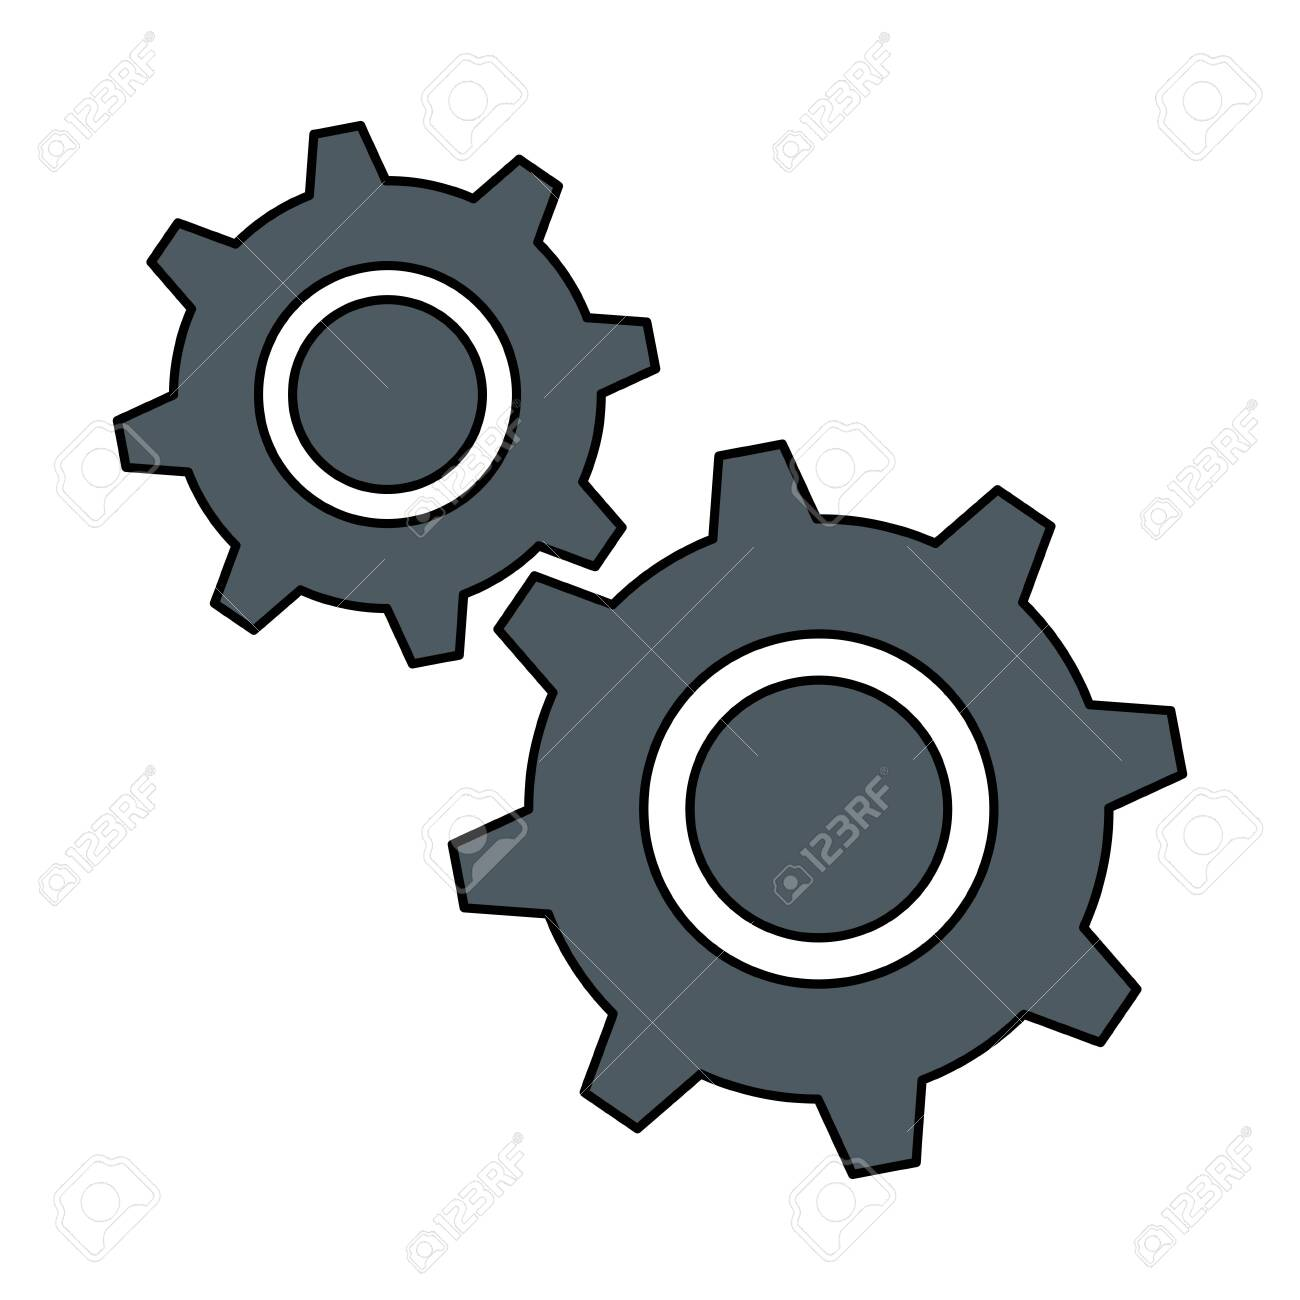 gears machinery isolated icon vector illustration design - 111861183